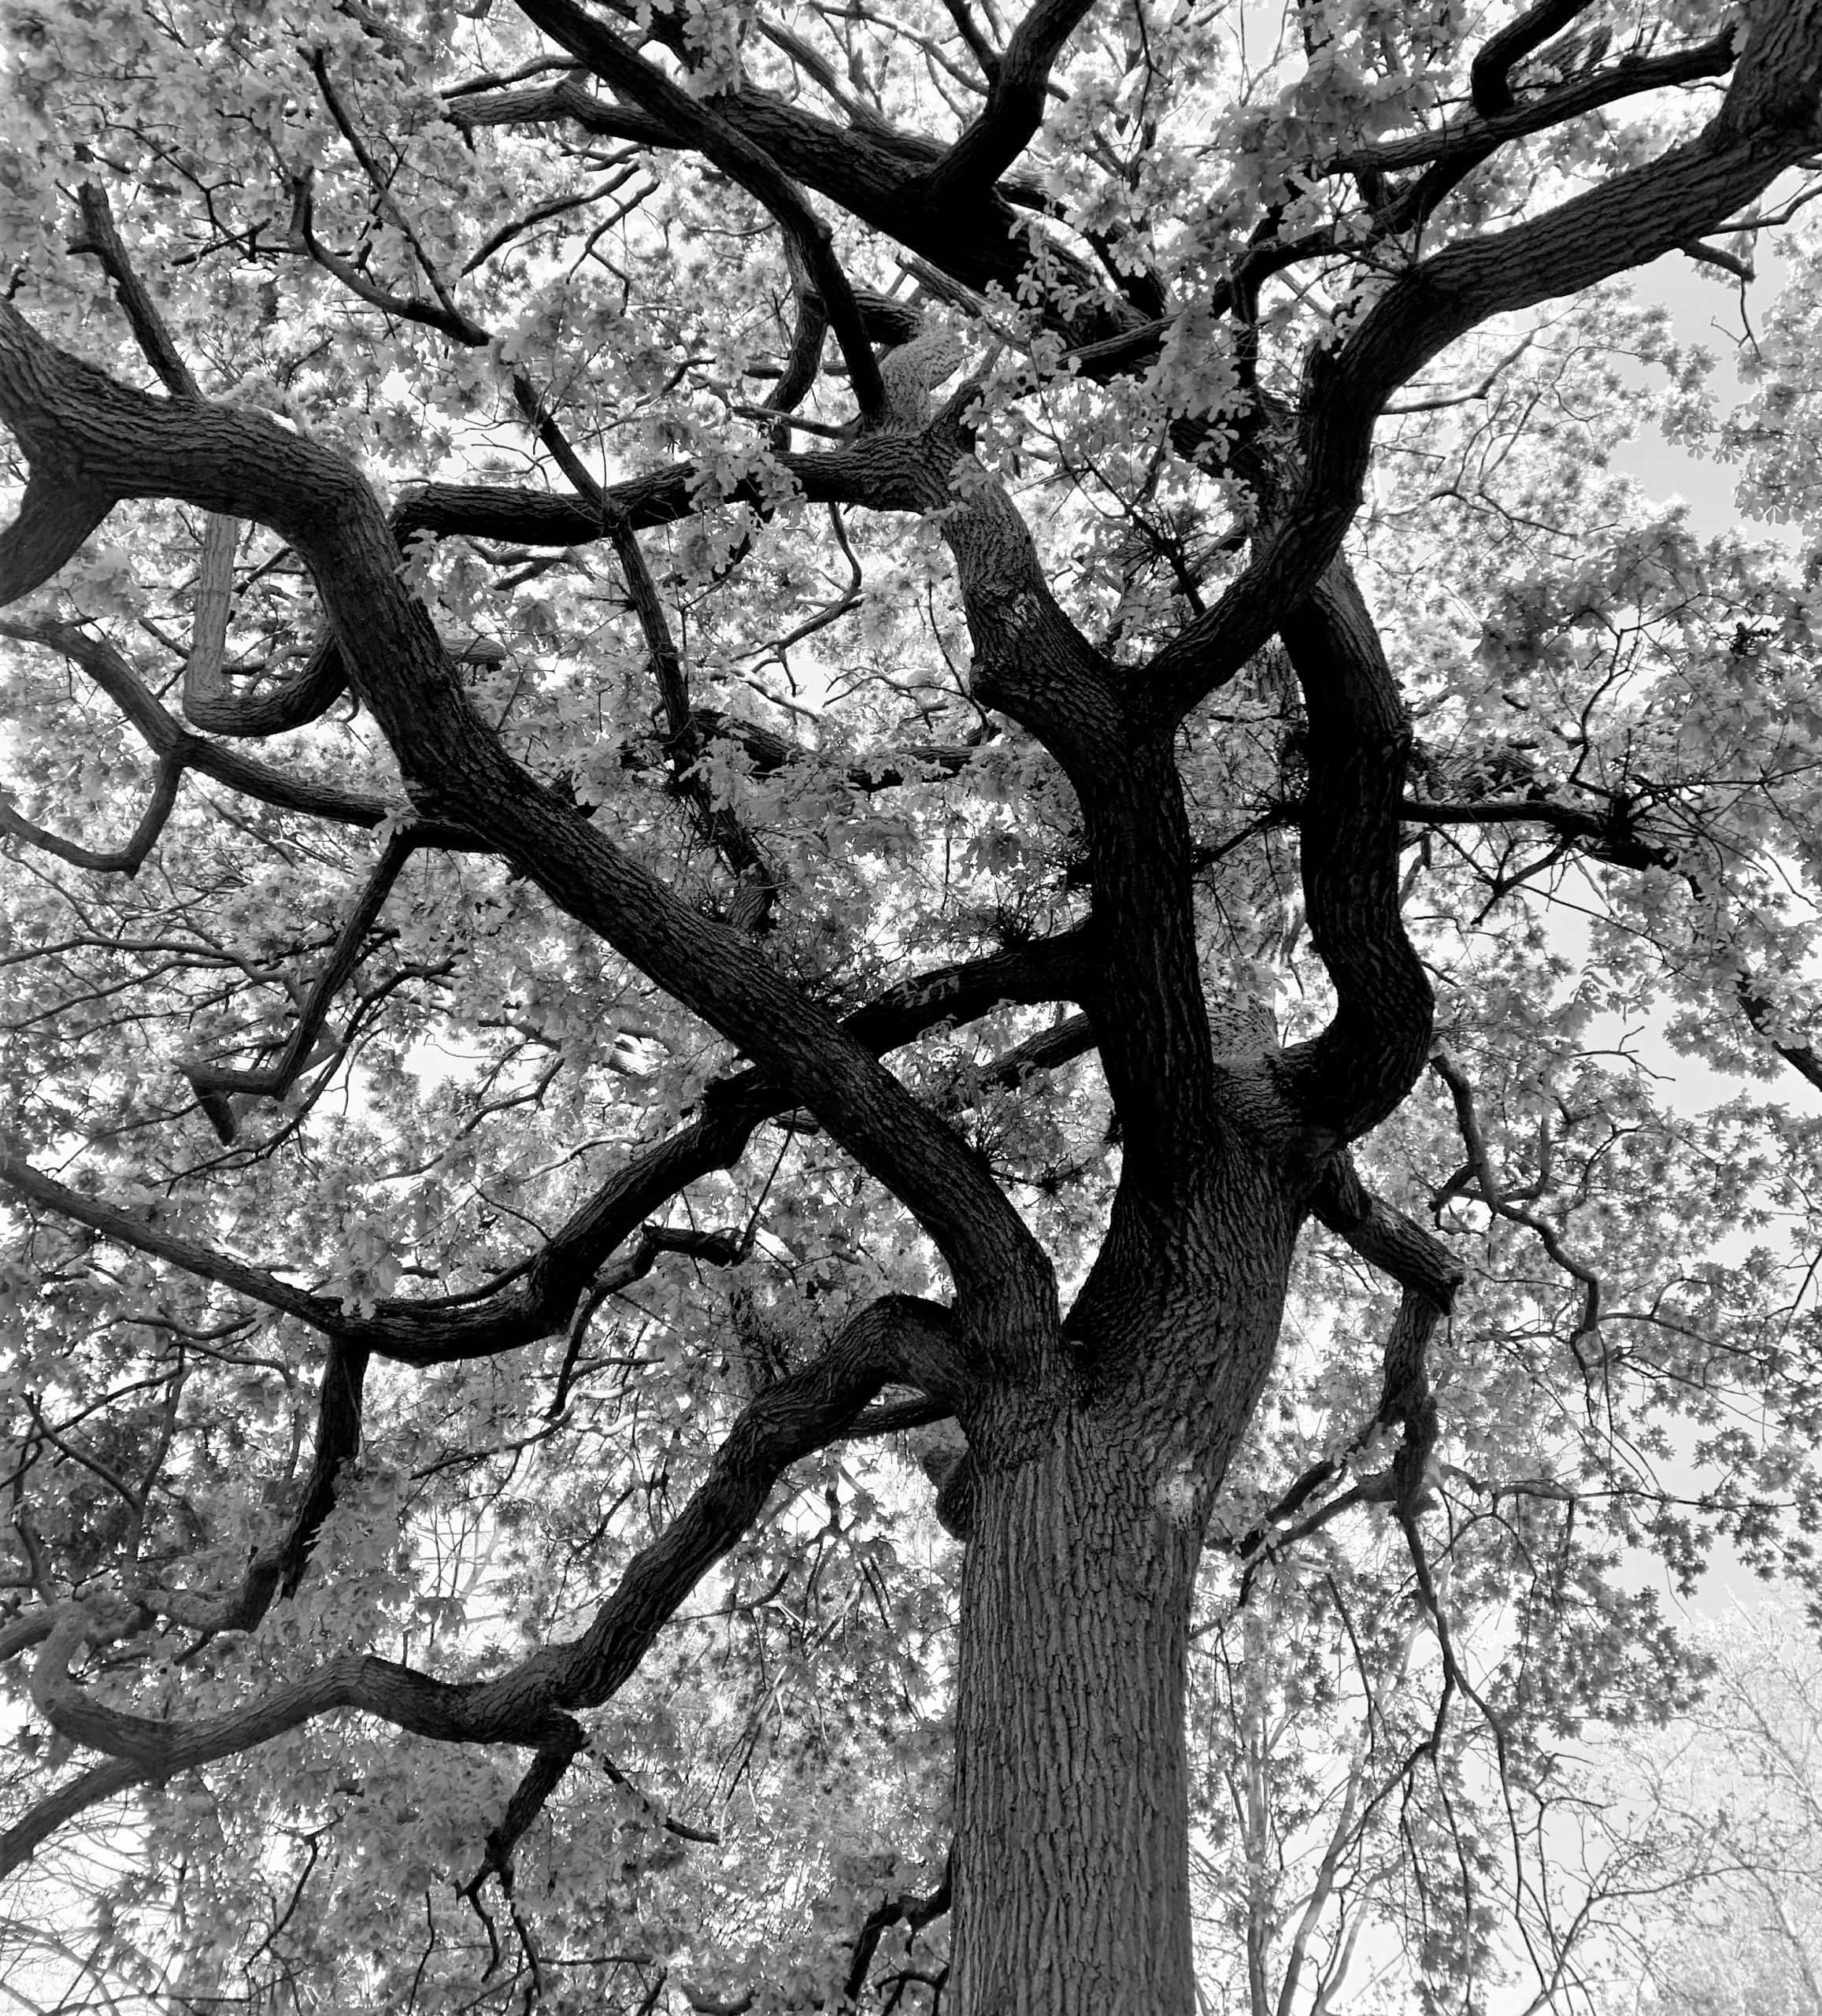 """Holland Park oak. Featured in Robert Macfarlane's """"The Wild Places"""" in the Examined Life Library."""